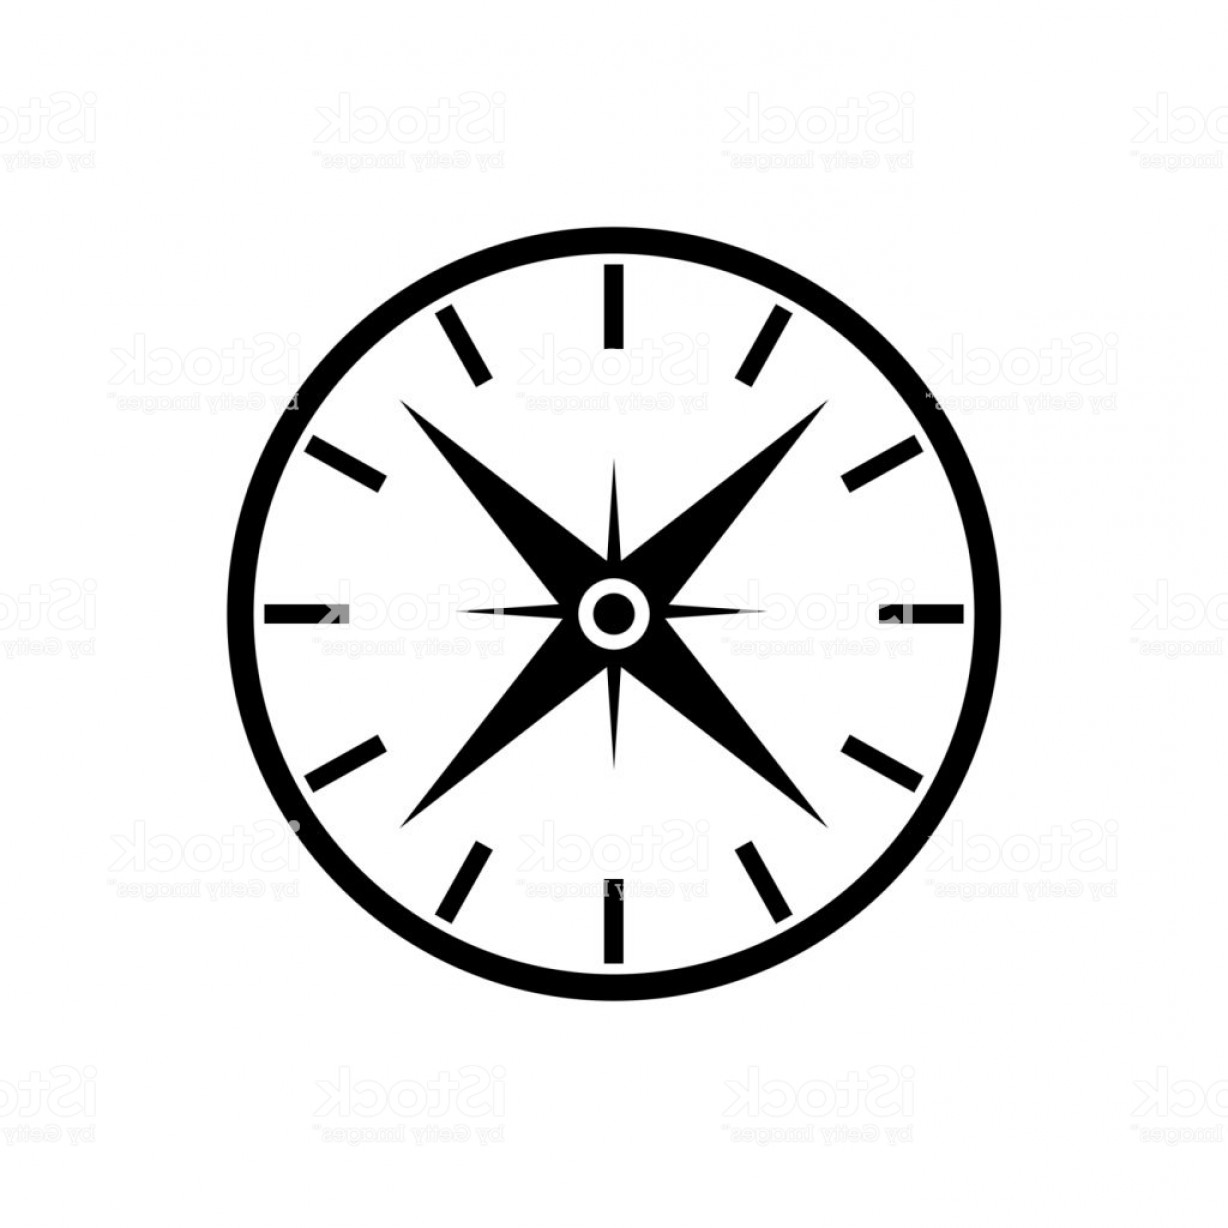 1228x1228 Simple Compass Vector Black And White Studiogrfx